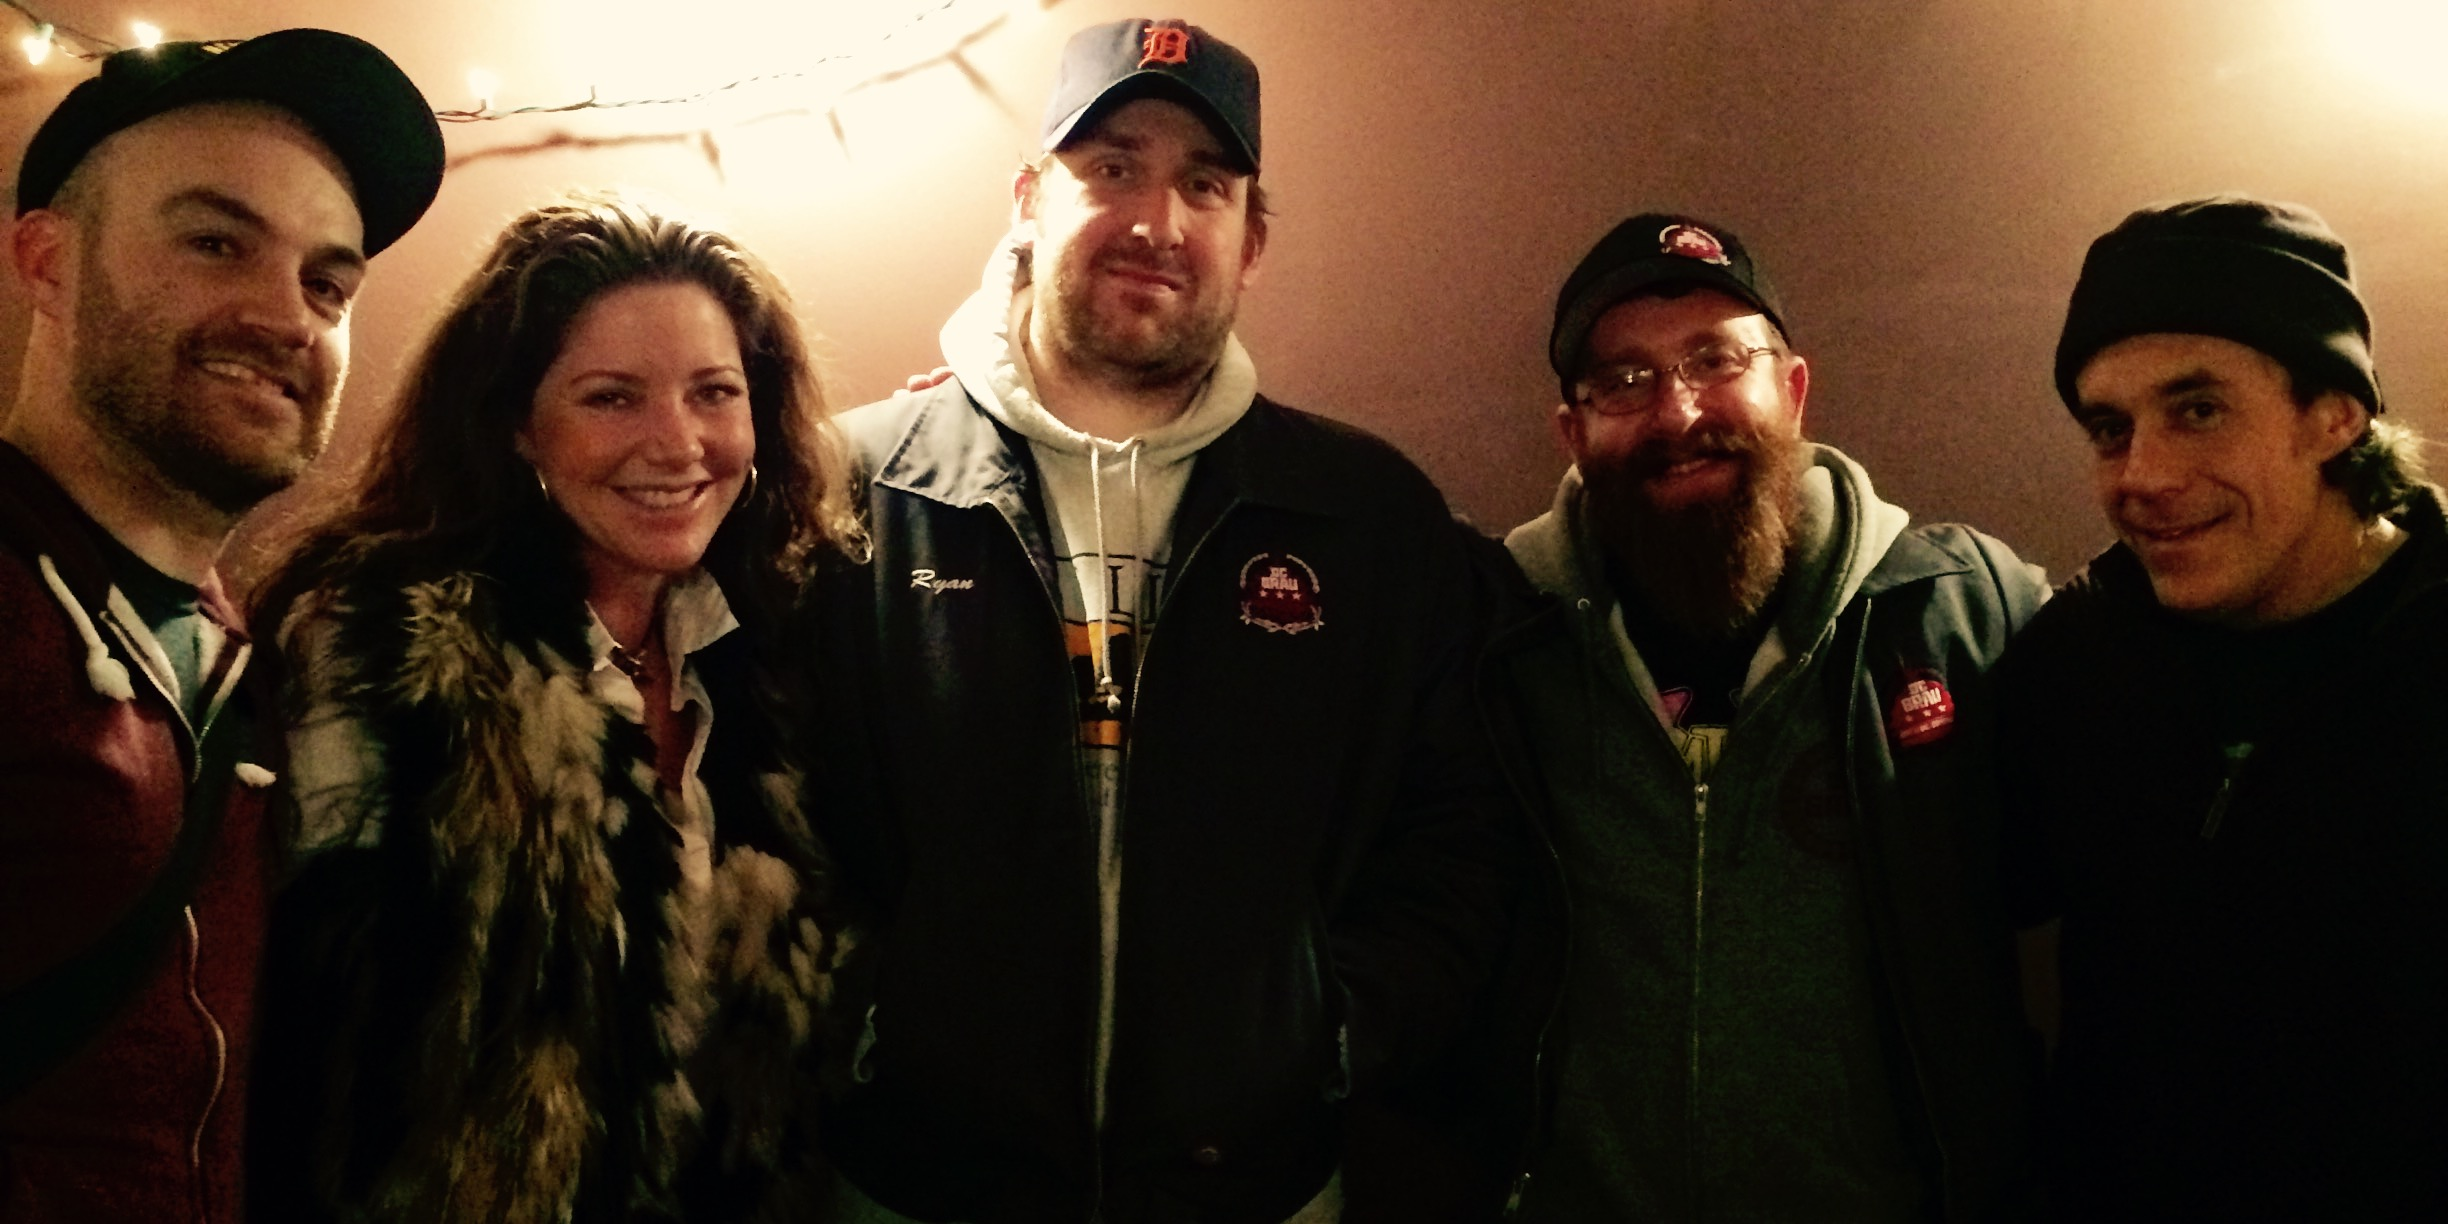 079 - Michael Clem, Mary Amons, Jason Budman, Ryan Brady